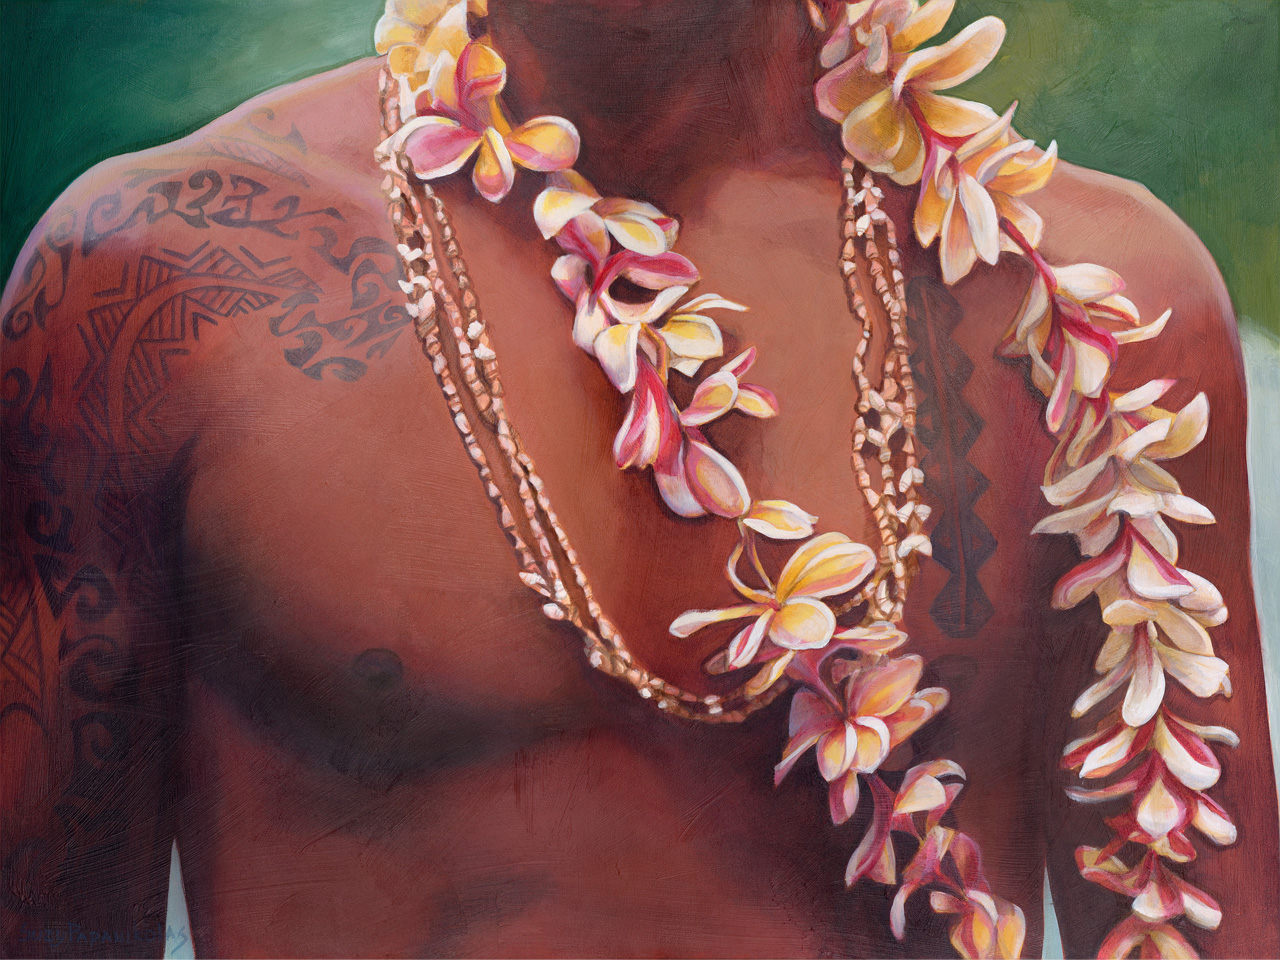 The upper body of a Hawaiian male with tribal tattoos, wearing plumeria and shell leis